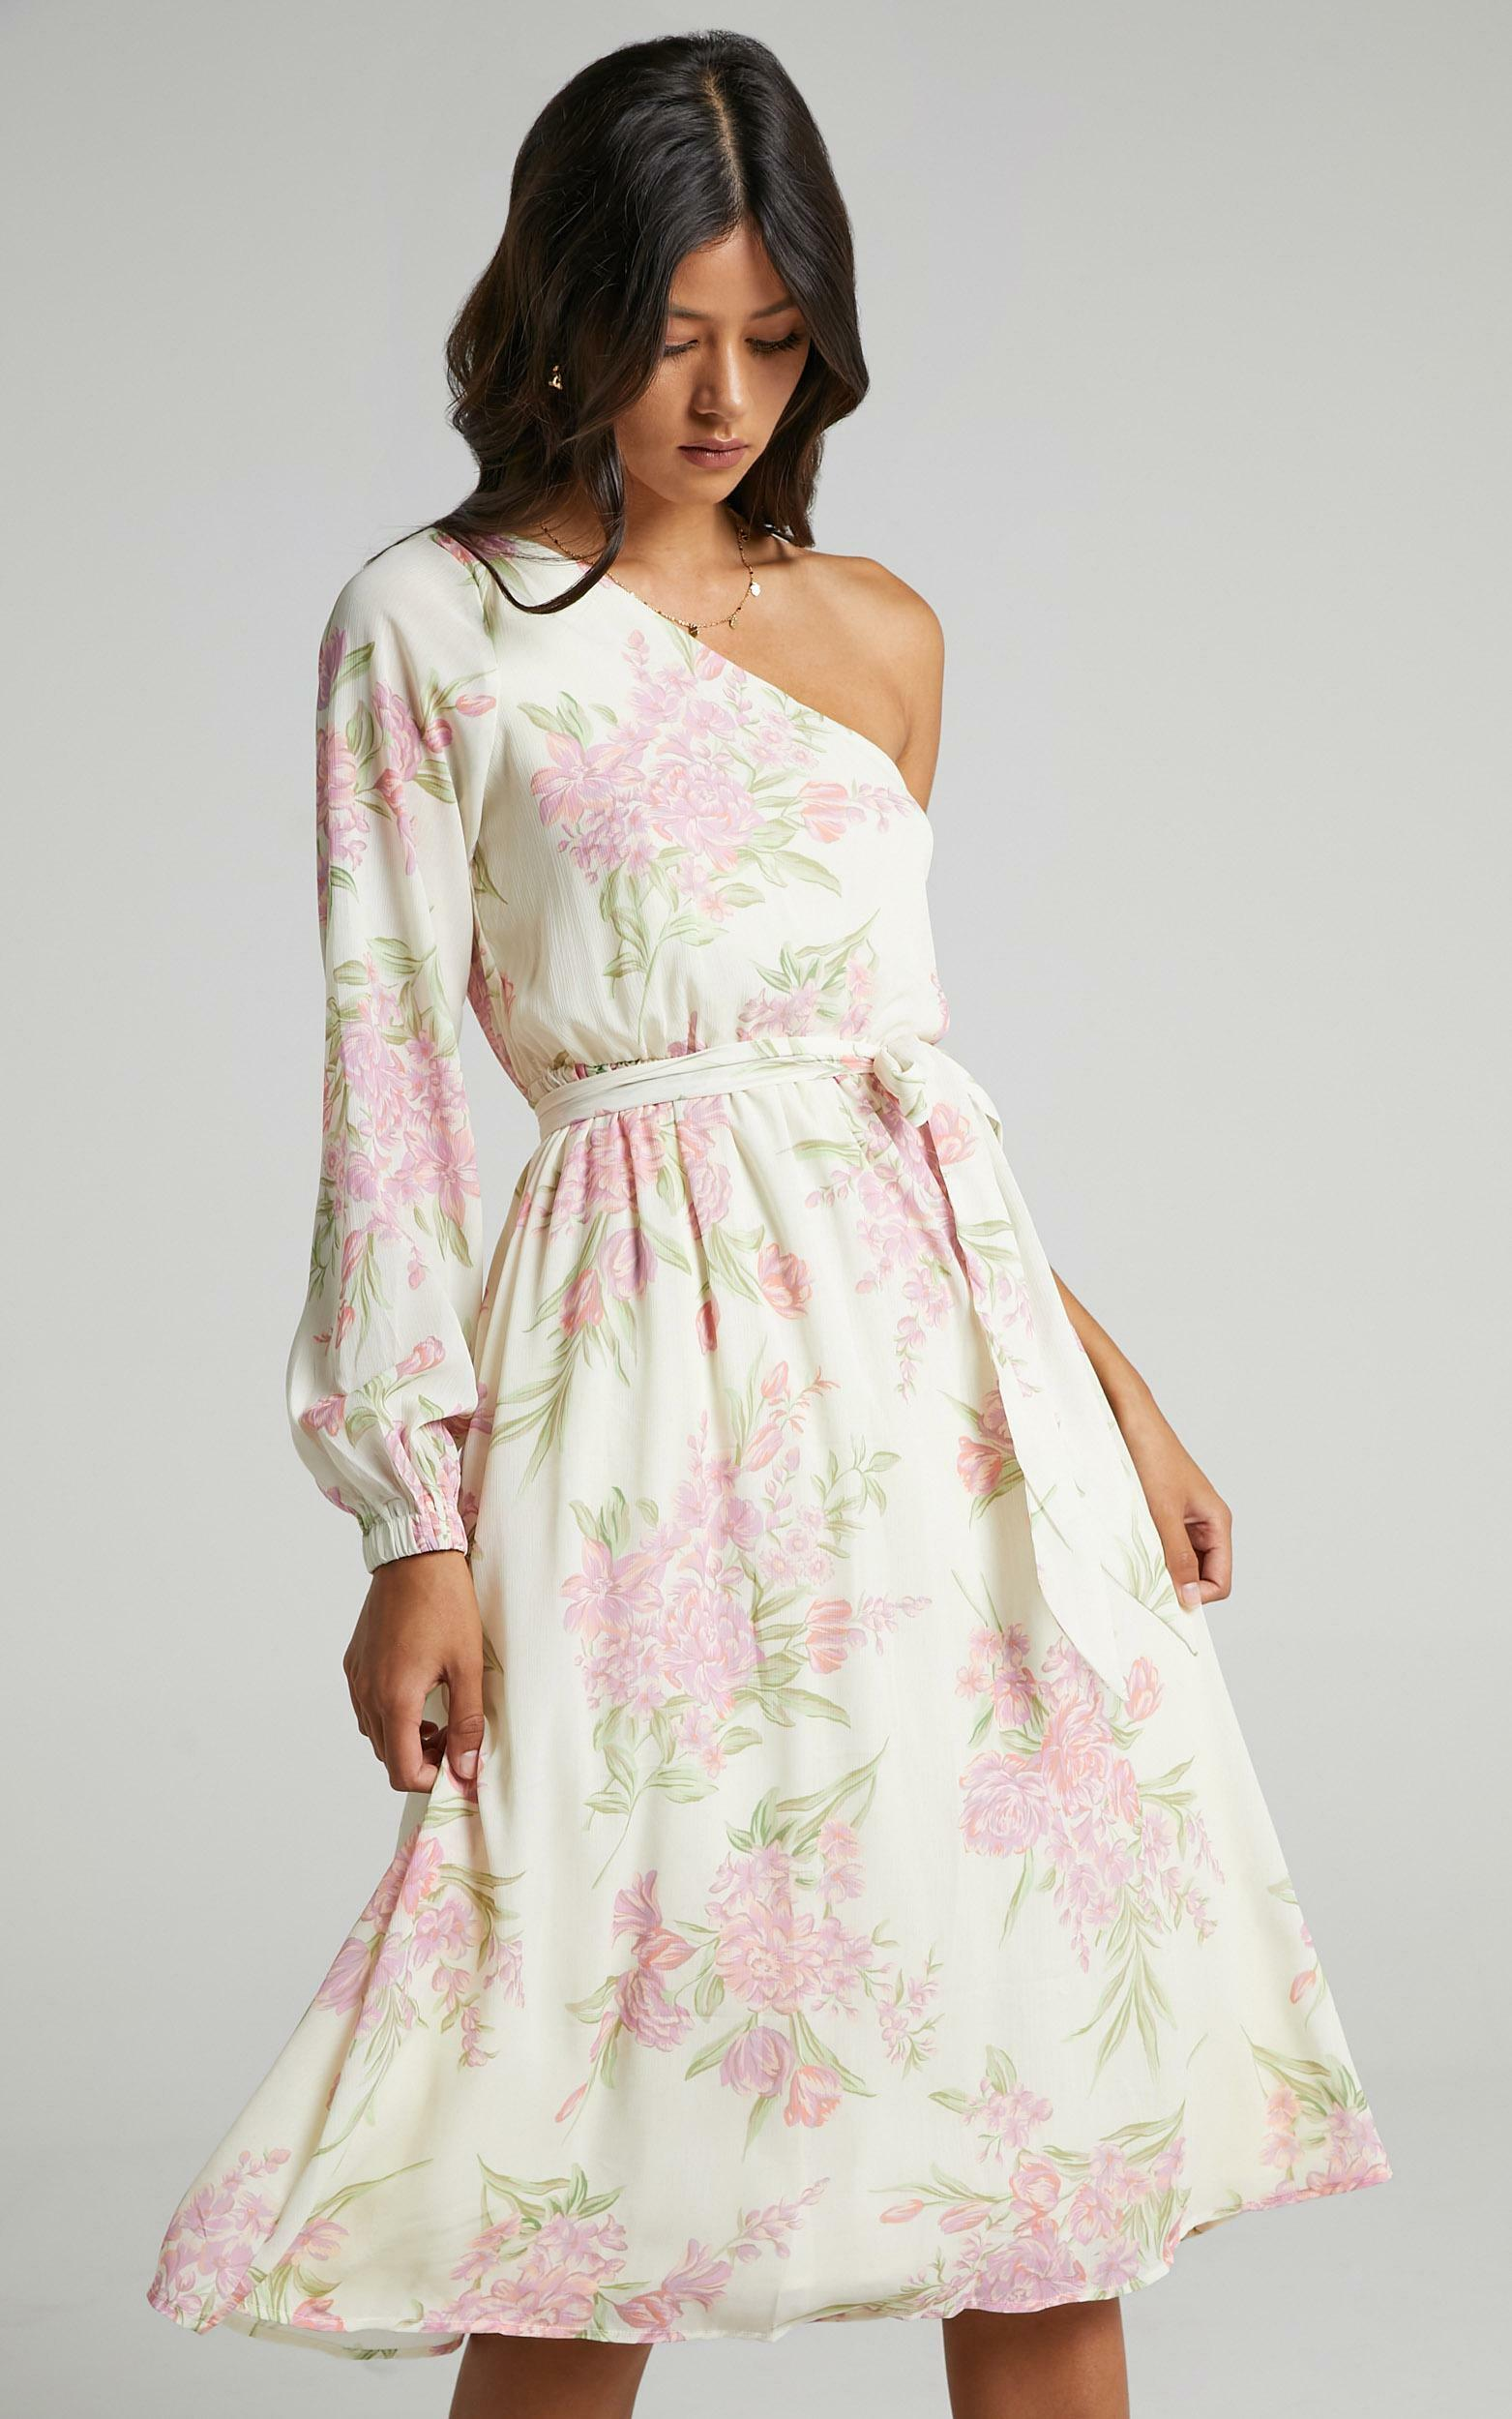 The Cerise Midi dress in Cream Floral - 06, MLT1, hi-res image number null